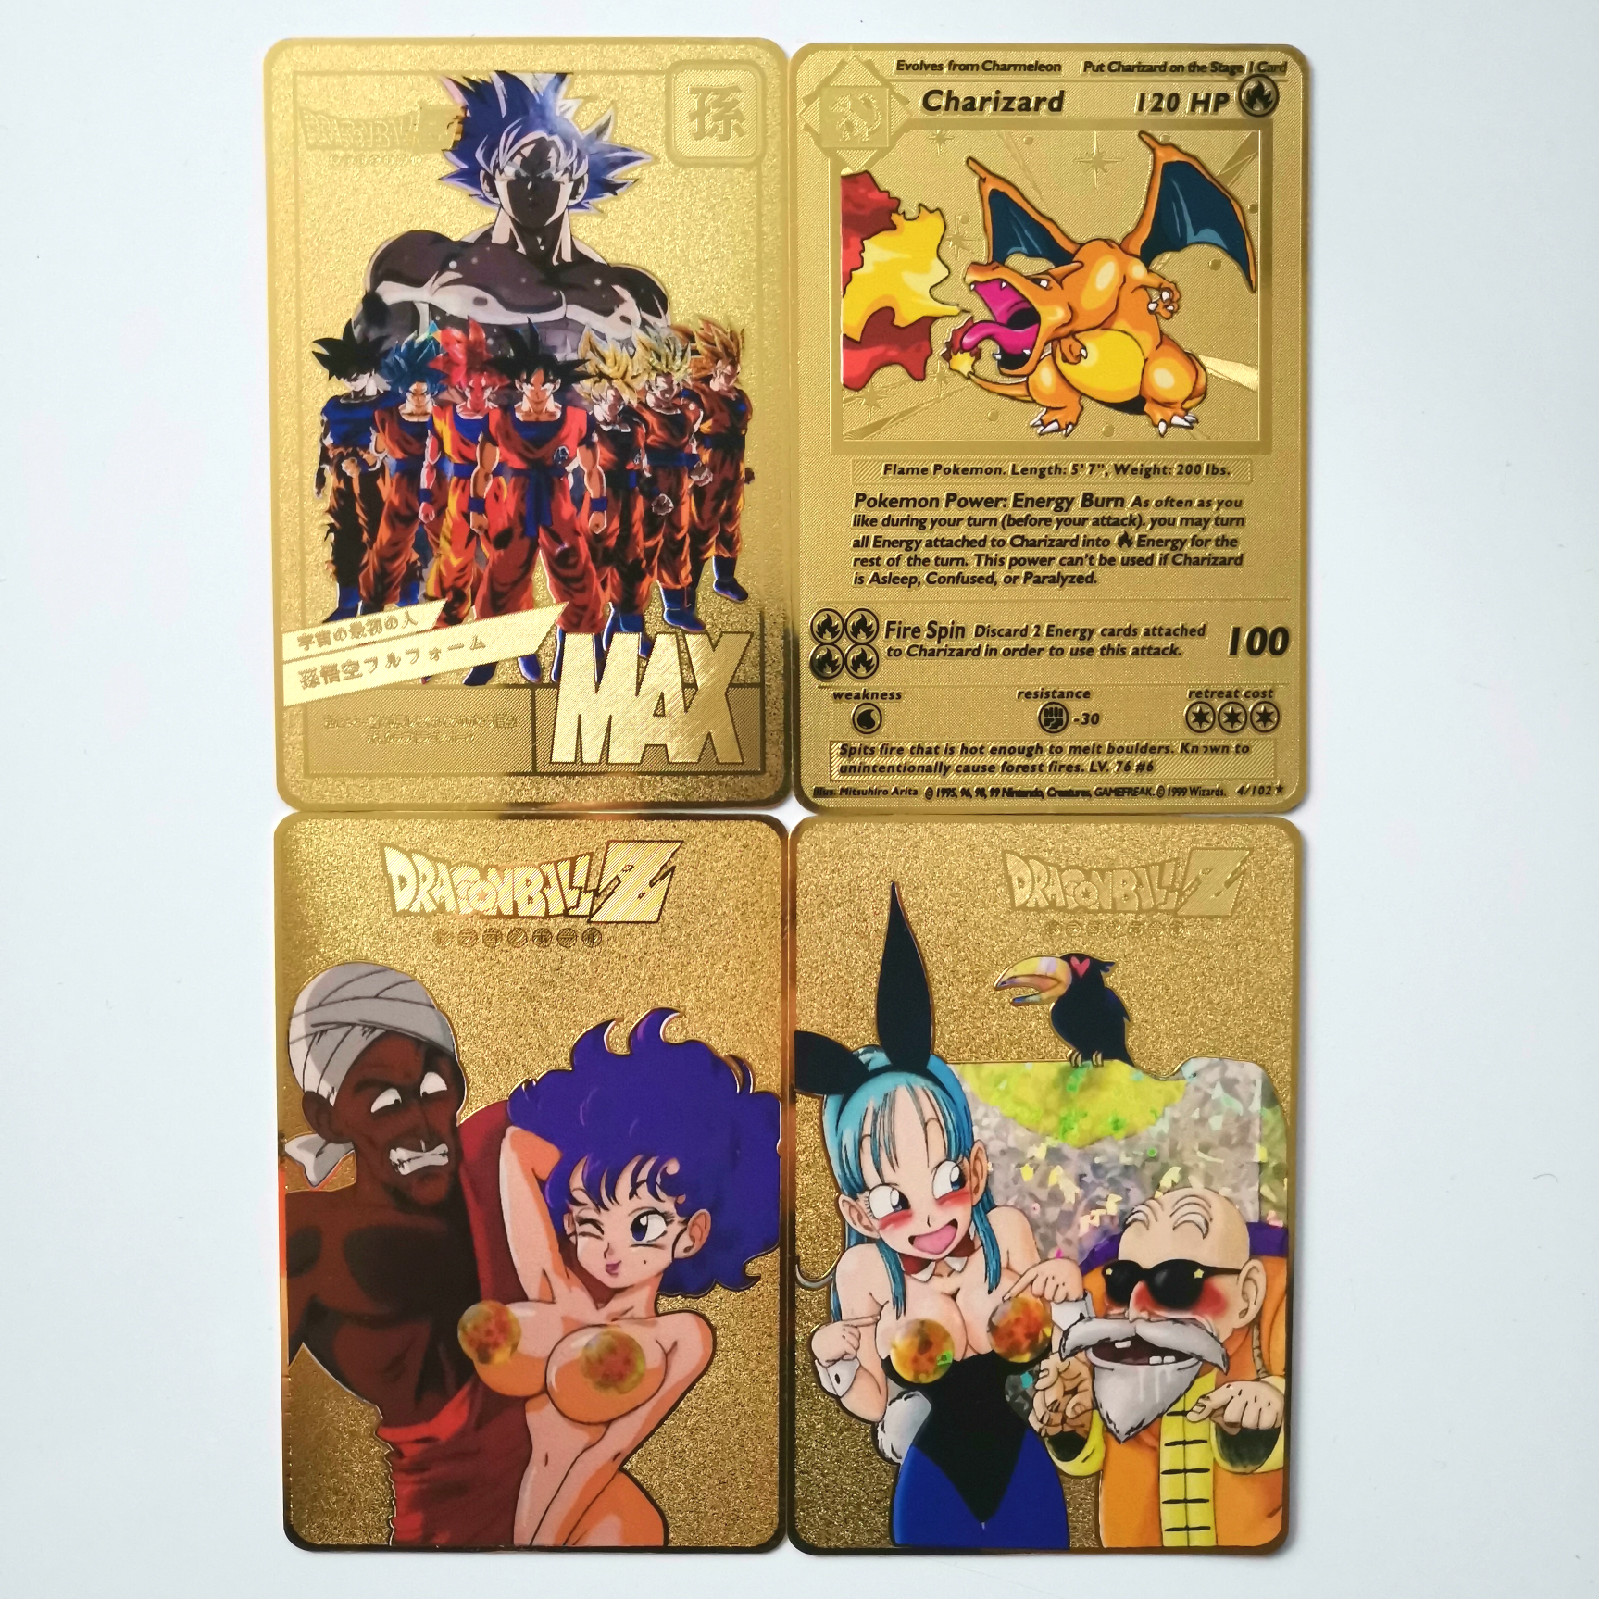 8 Styles Gold Metal Card Super Dragon Ball Z Single Heroes Battle Ultra Instinct Goku Game Collection Anime Cards